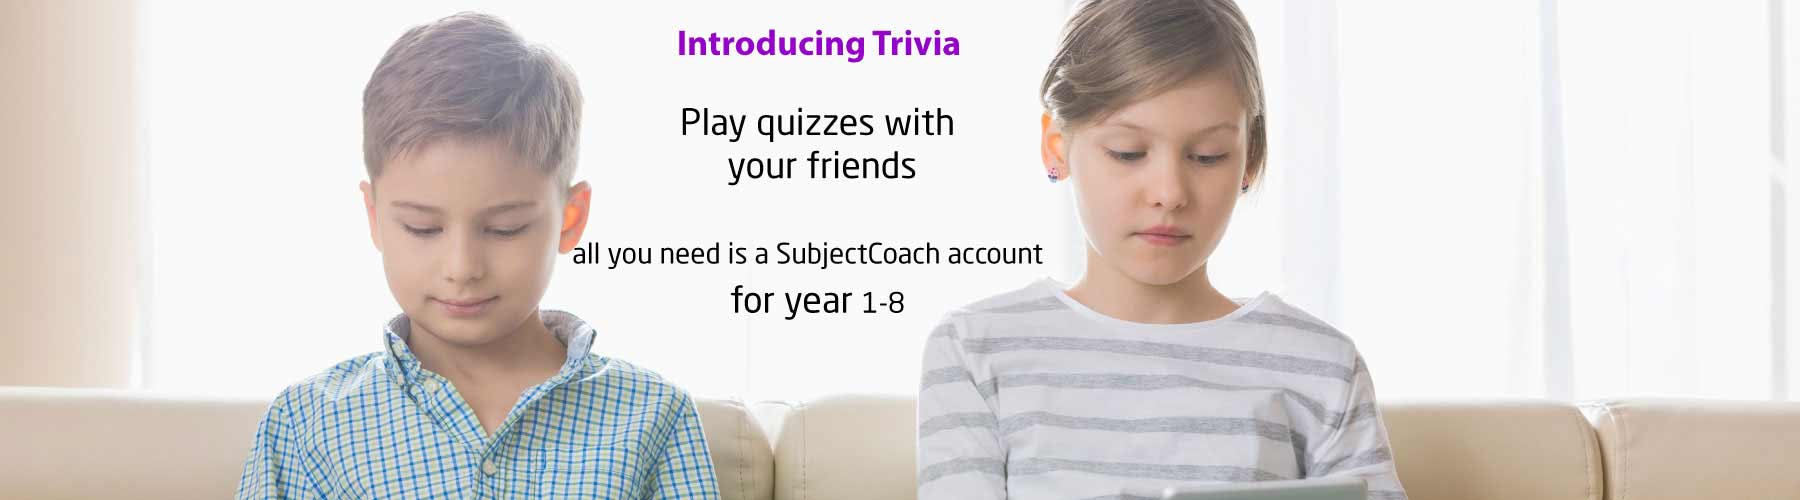 English Maths Science Multiplayer Trivia Games